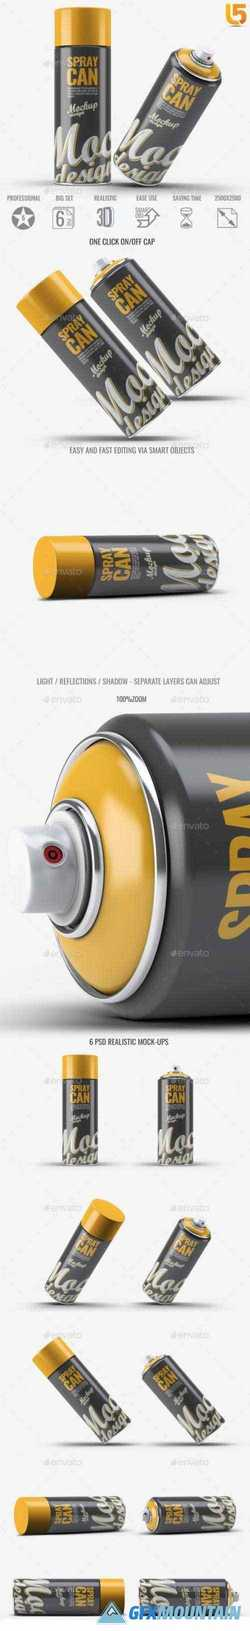 SPRAY PAINT MOCK-UP V2 - 22817845